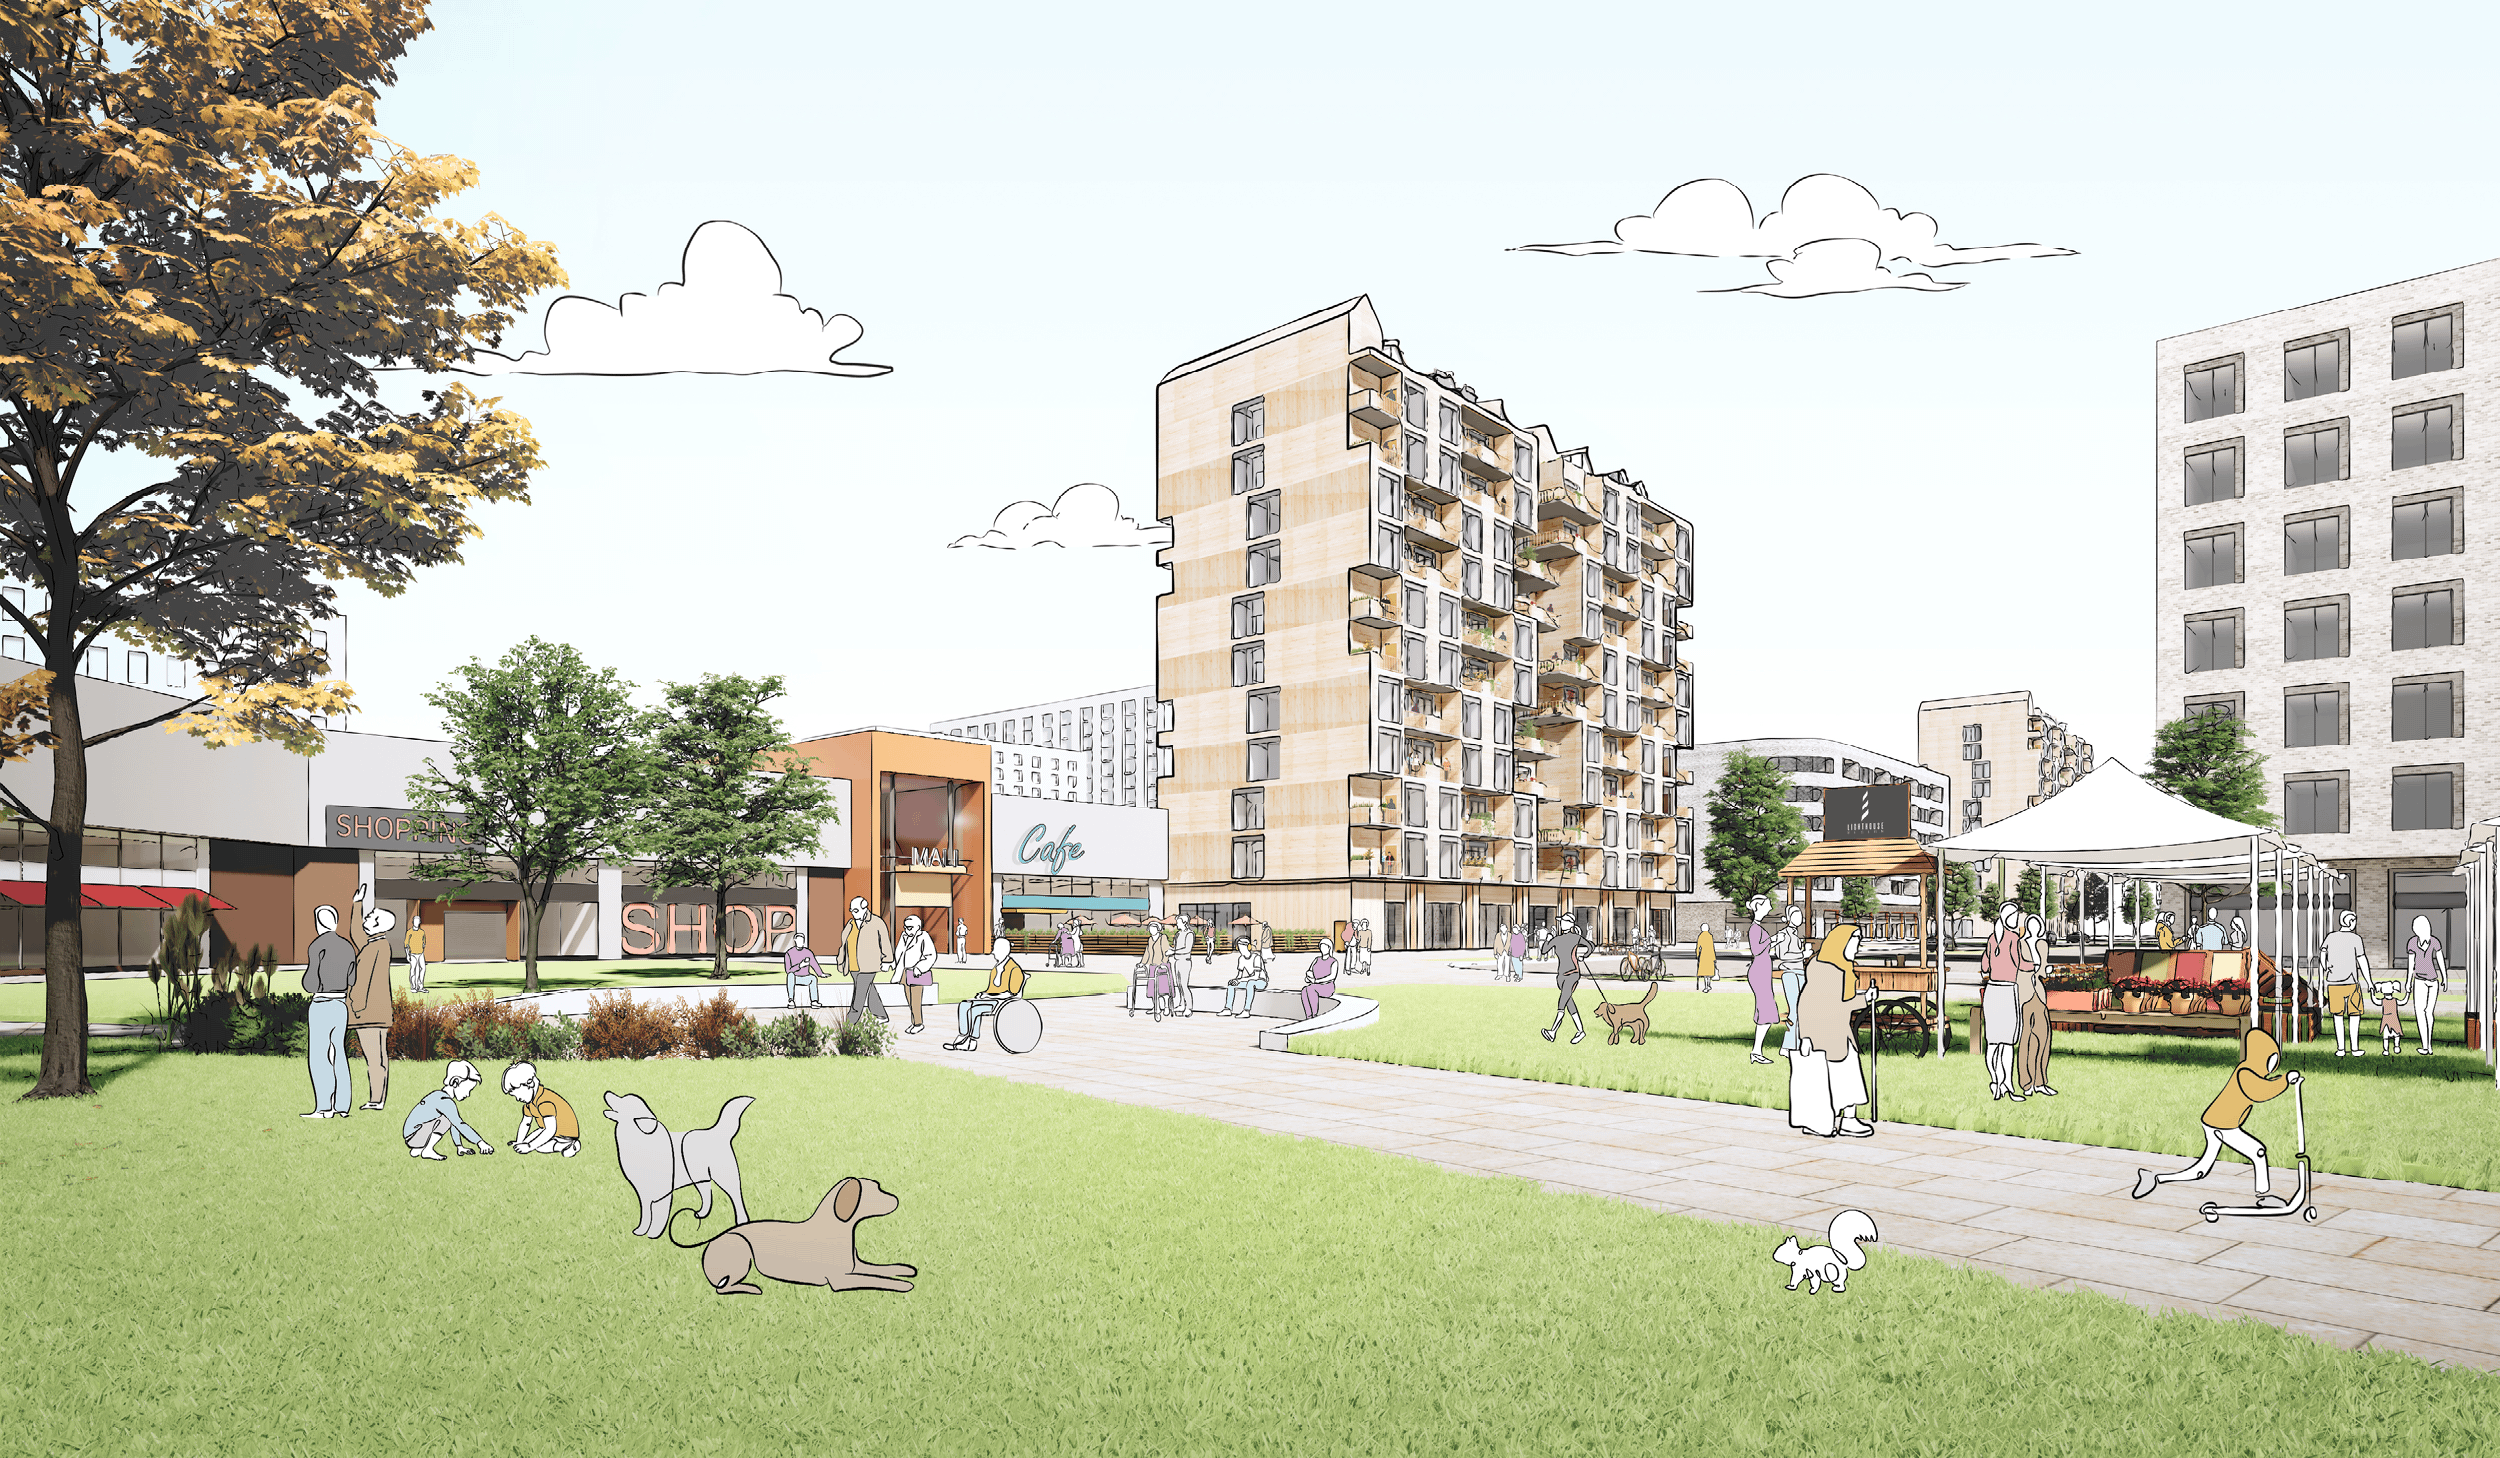 sketch of a multi-unit residential building on the edge of a park with lots of different people enjoying the public space